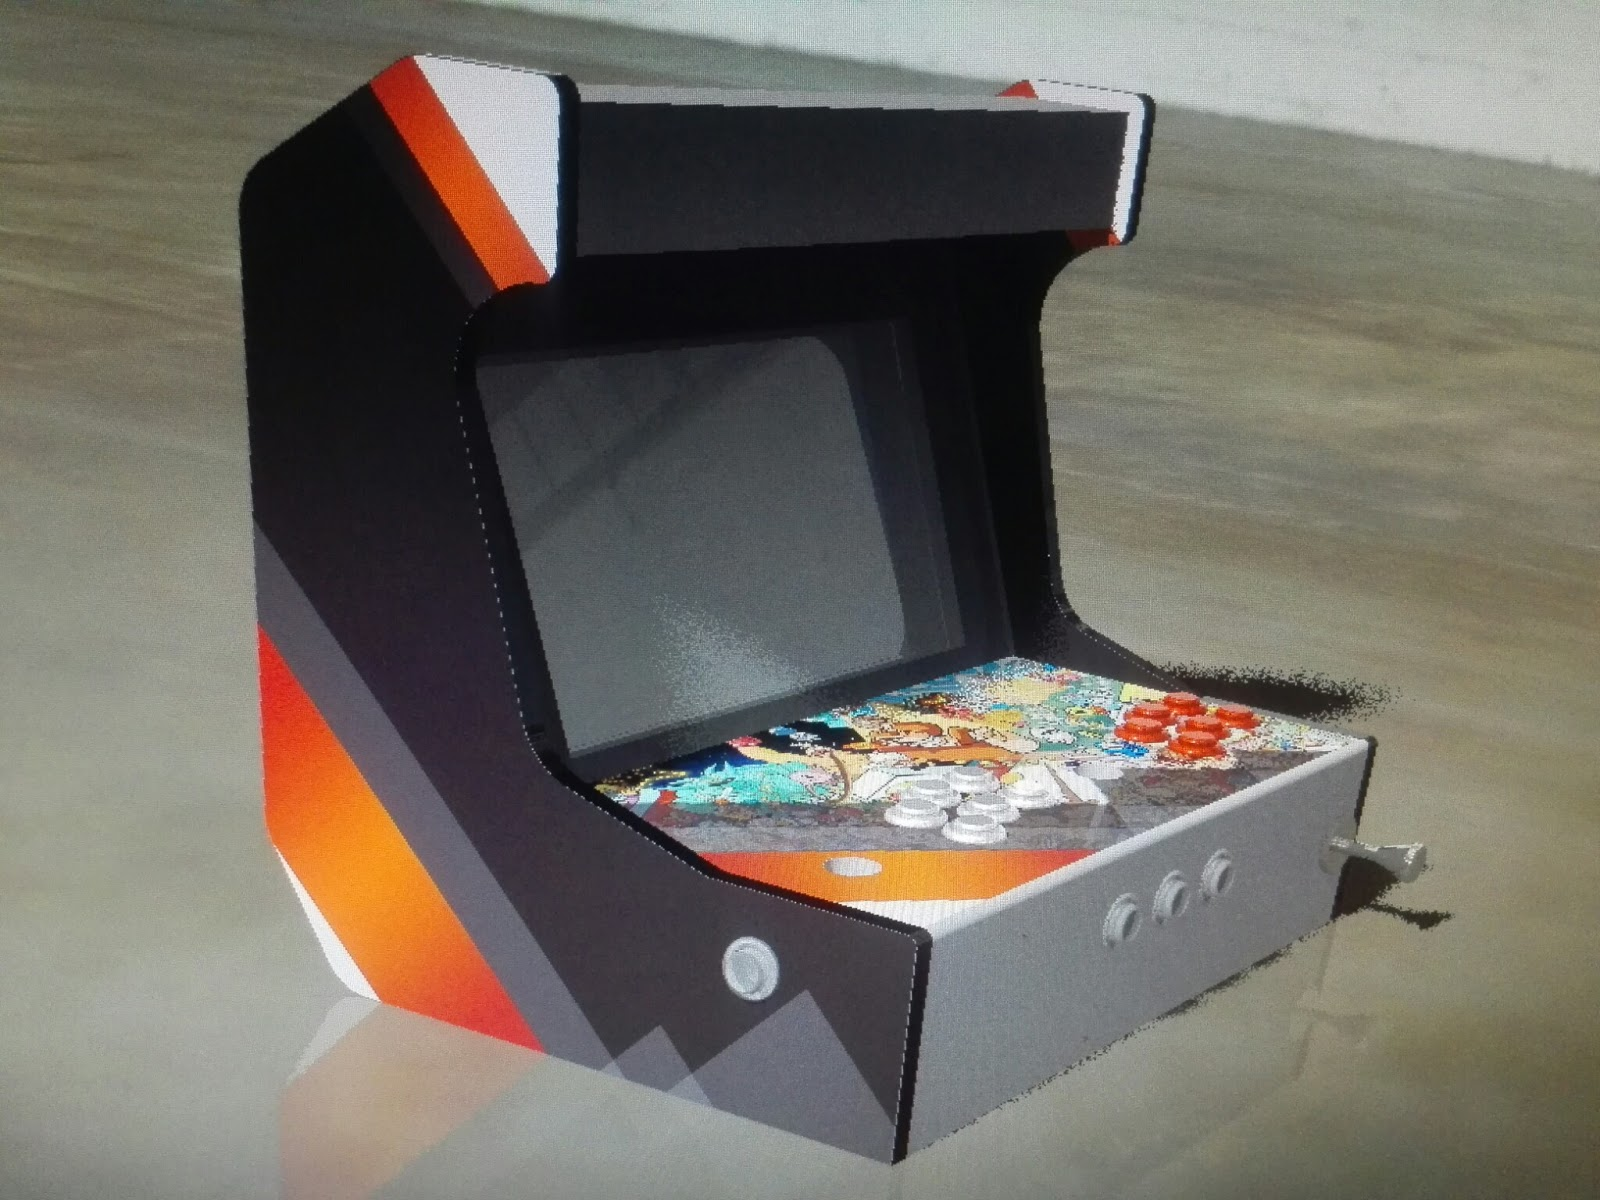 3d Printing Rc Cnc Amp Laser Projects Bartop Mame Arcade